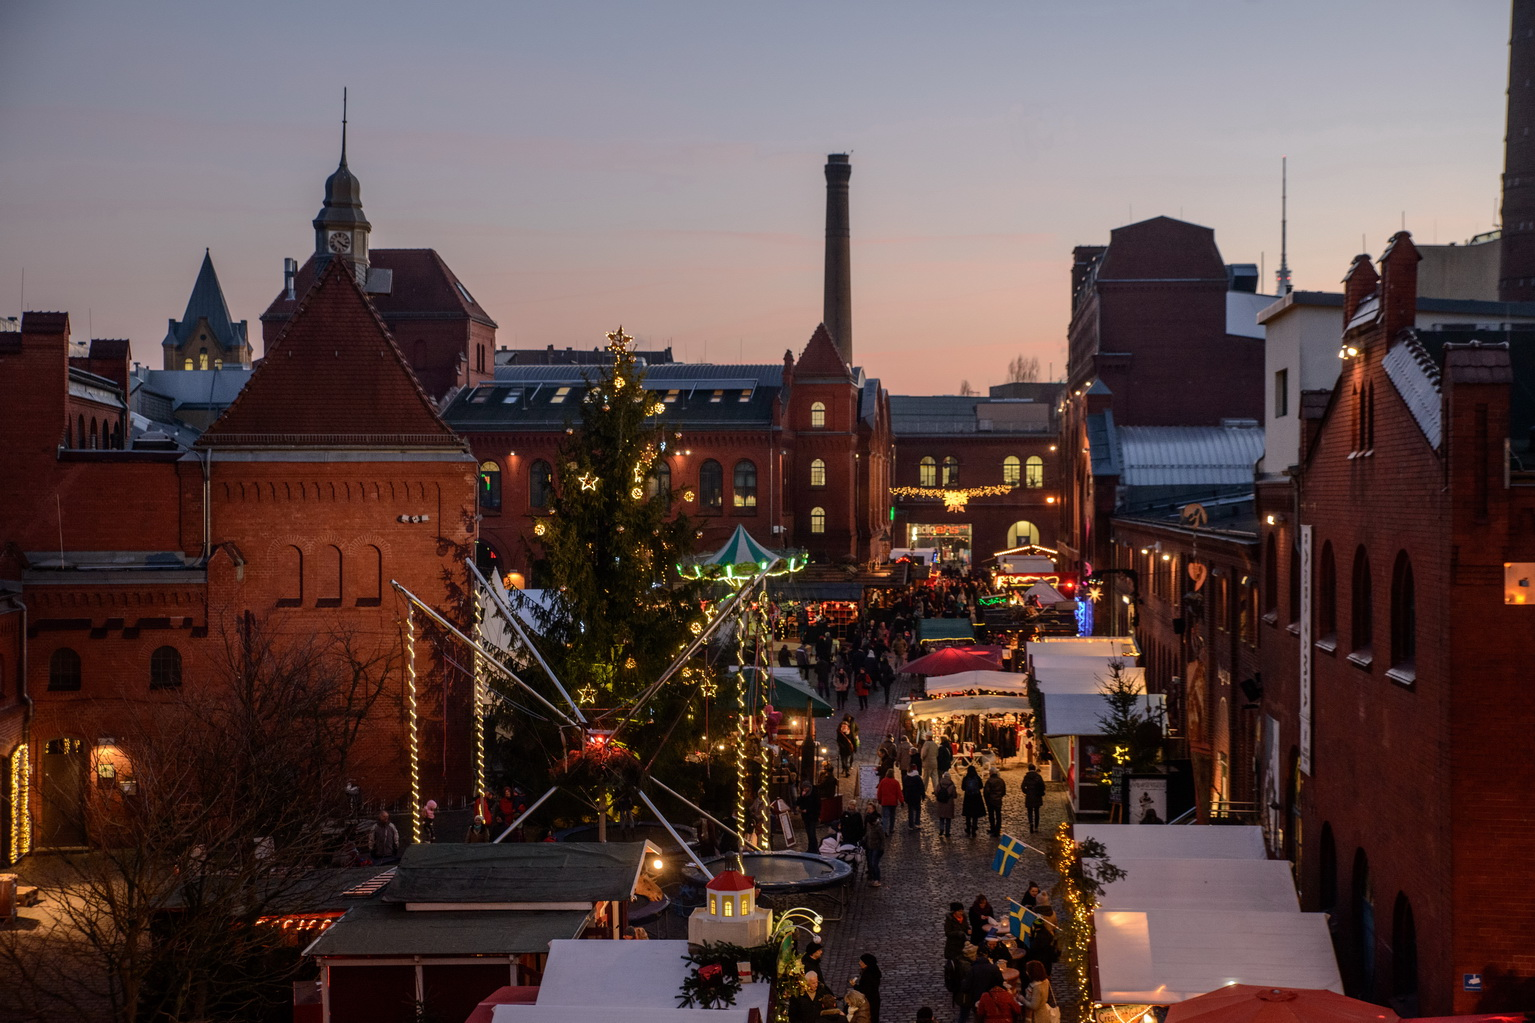 Weihnachtsmarkt Spandau.Berlin S Best Christmas Markets 2017 Awesome Berlin